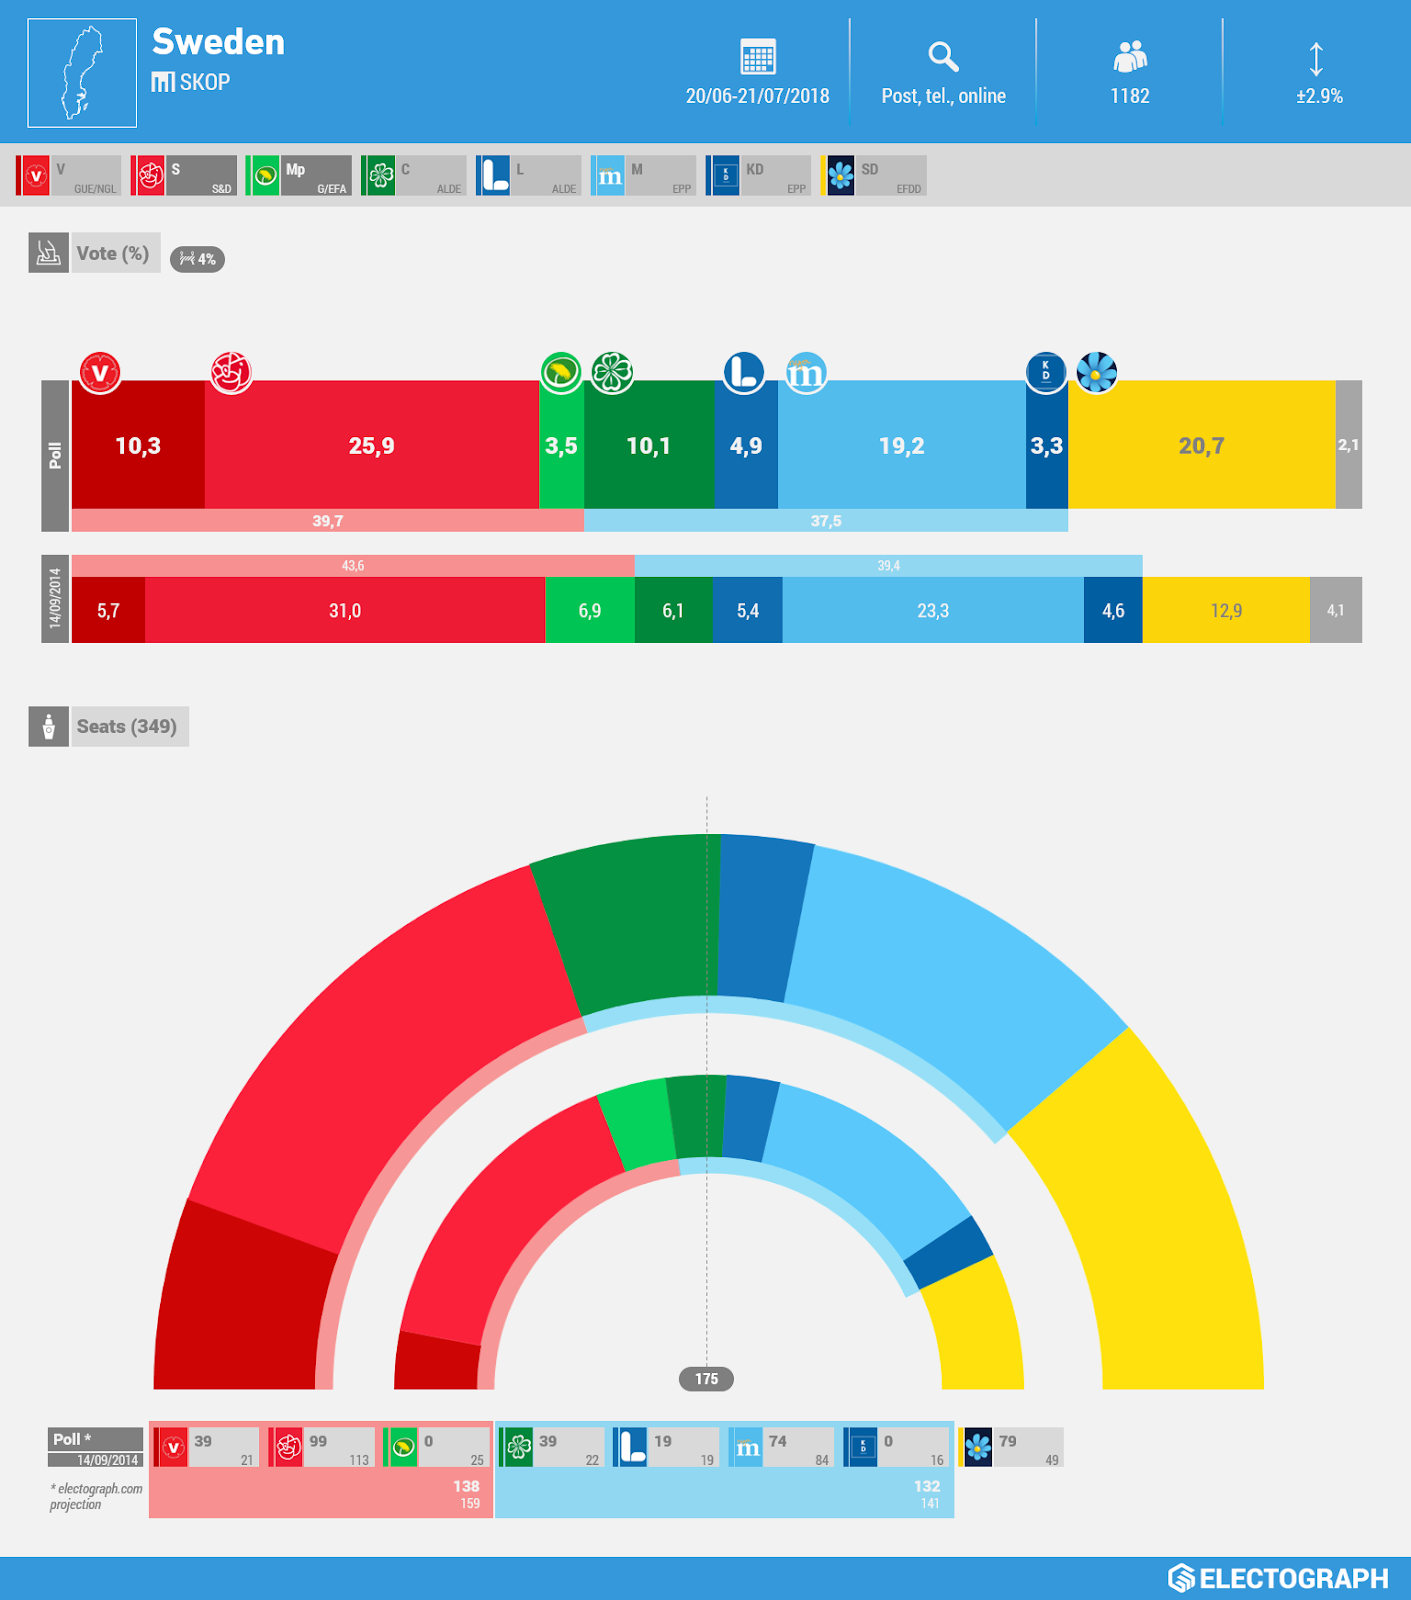 SWEDEN: Skop poll chart, July 2018